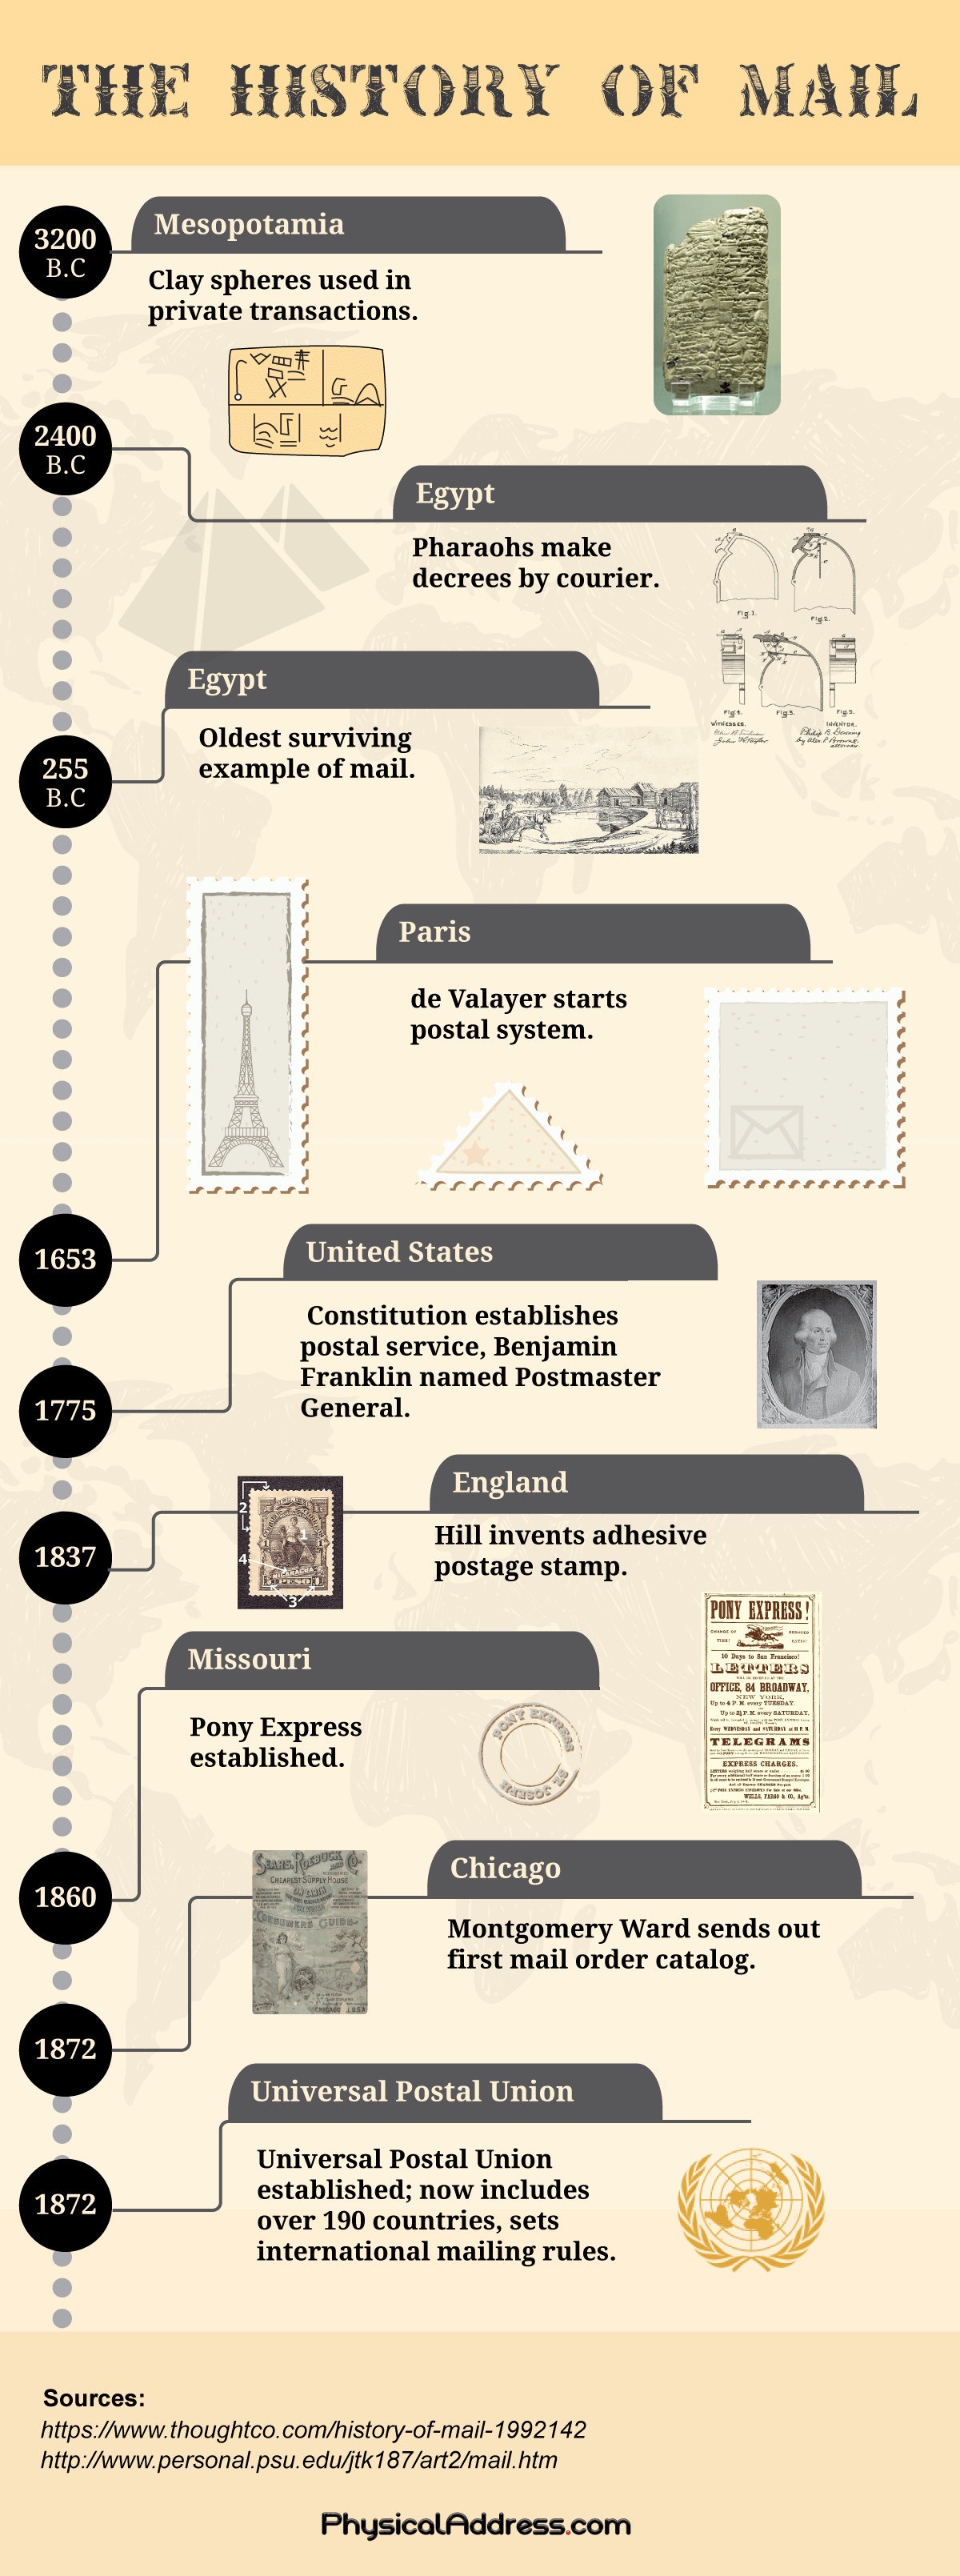 PhysicalAddress.com History of Postal Mail Infographic